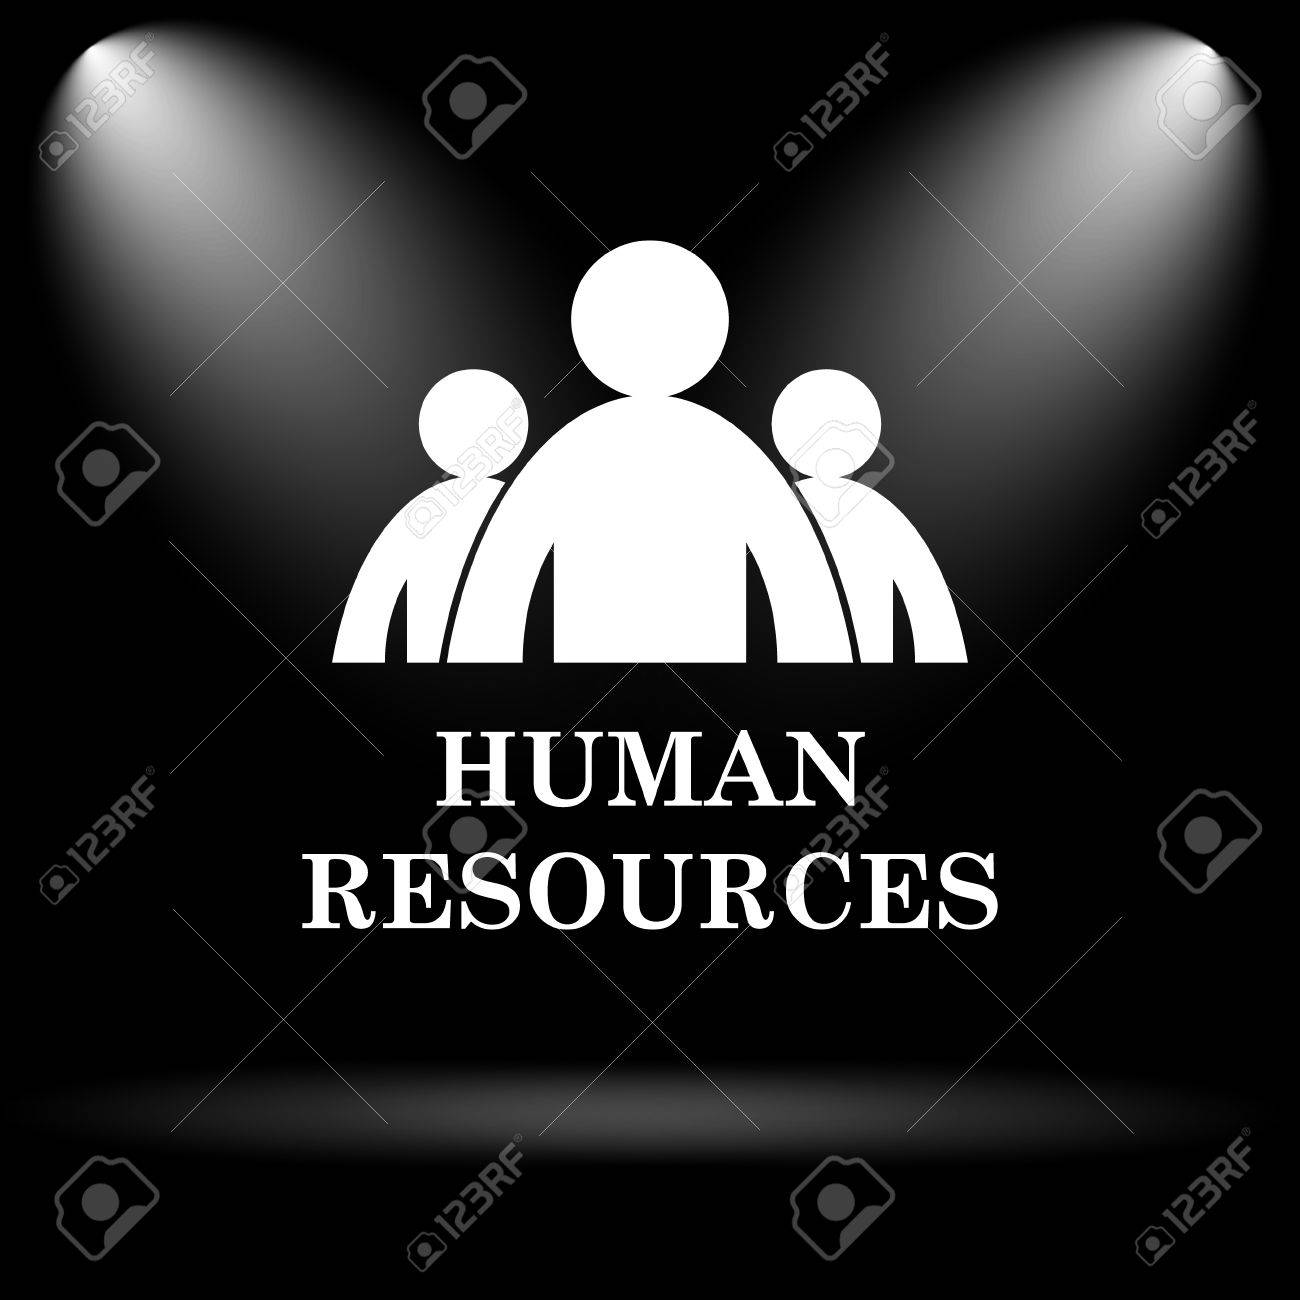 Human Resources Icon Internet Button On Black Background Stock Photo Picture And Royalty Free Image Image 45239987 Free icons of human in various ui design styles for web, mobile, and graphic design projects. human resources icon internet button on black background